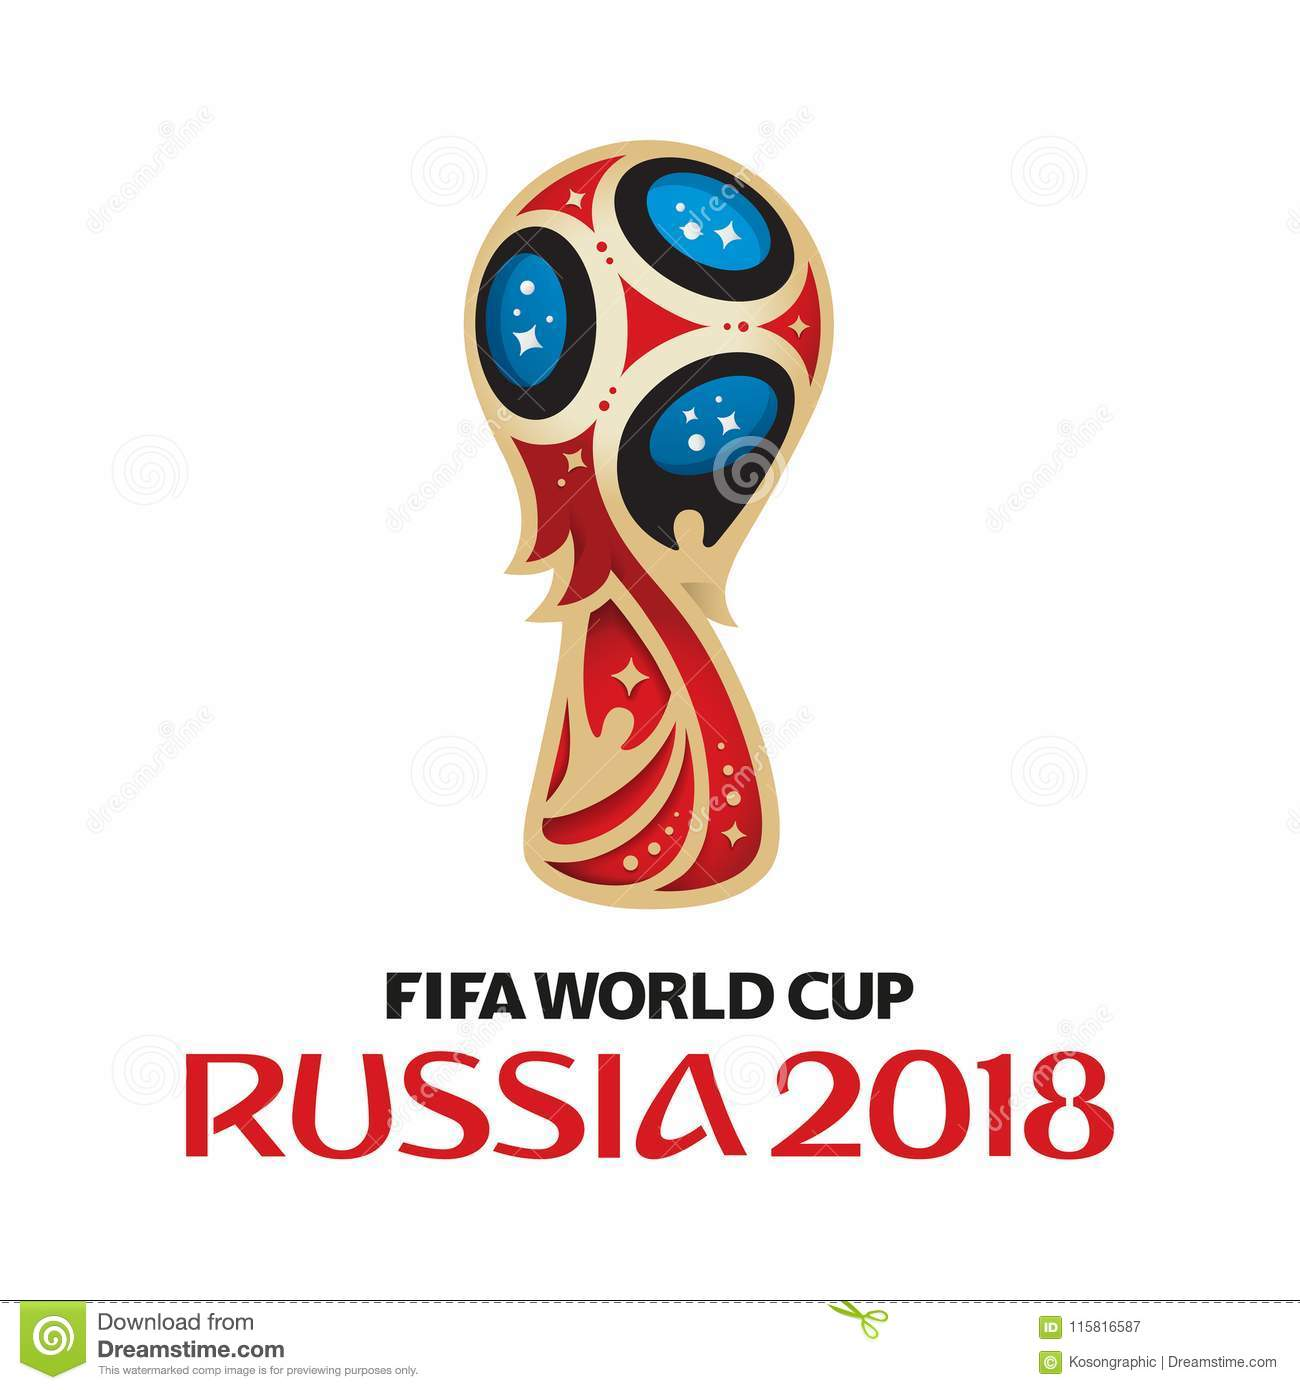 FIFA World Cup Russia 2018 logo on white background.